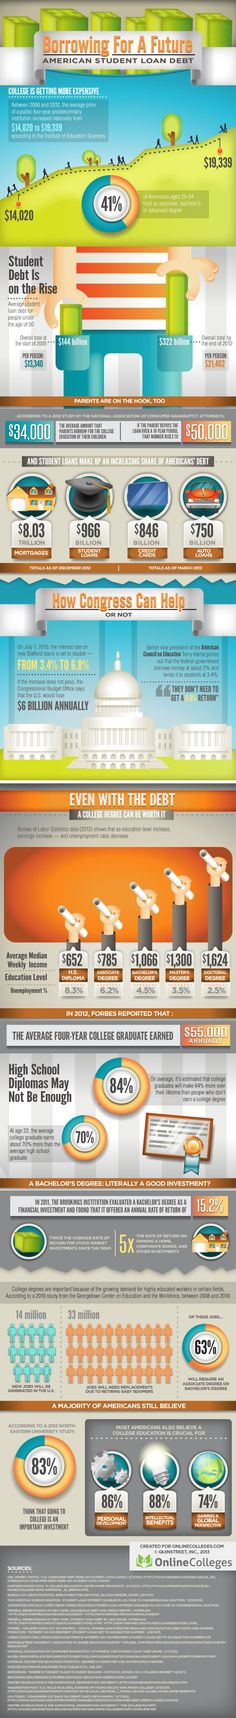 Borrowing for a Future: American #Student Debt #studentloans #college